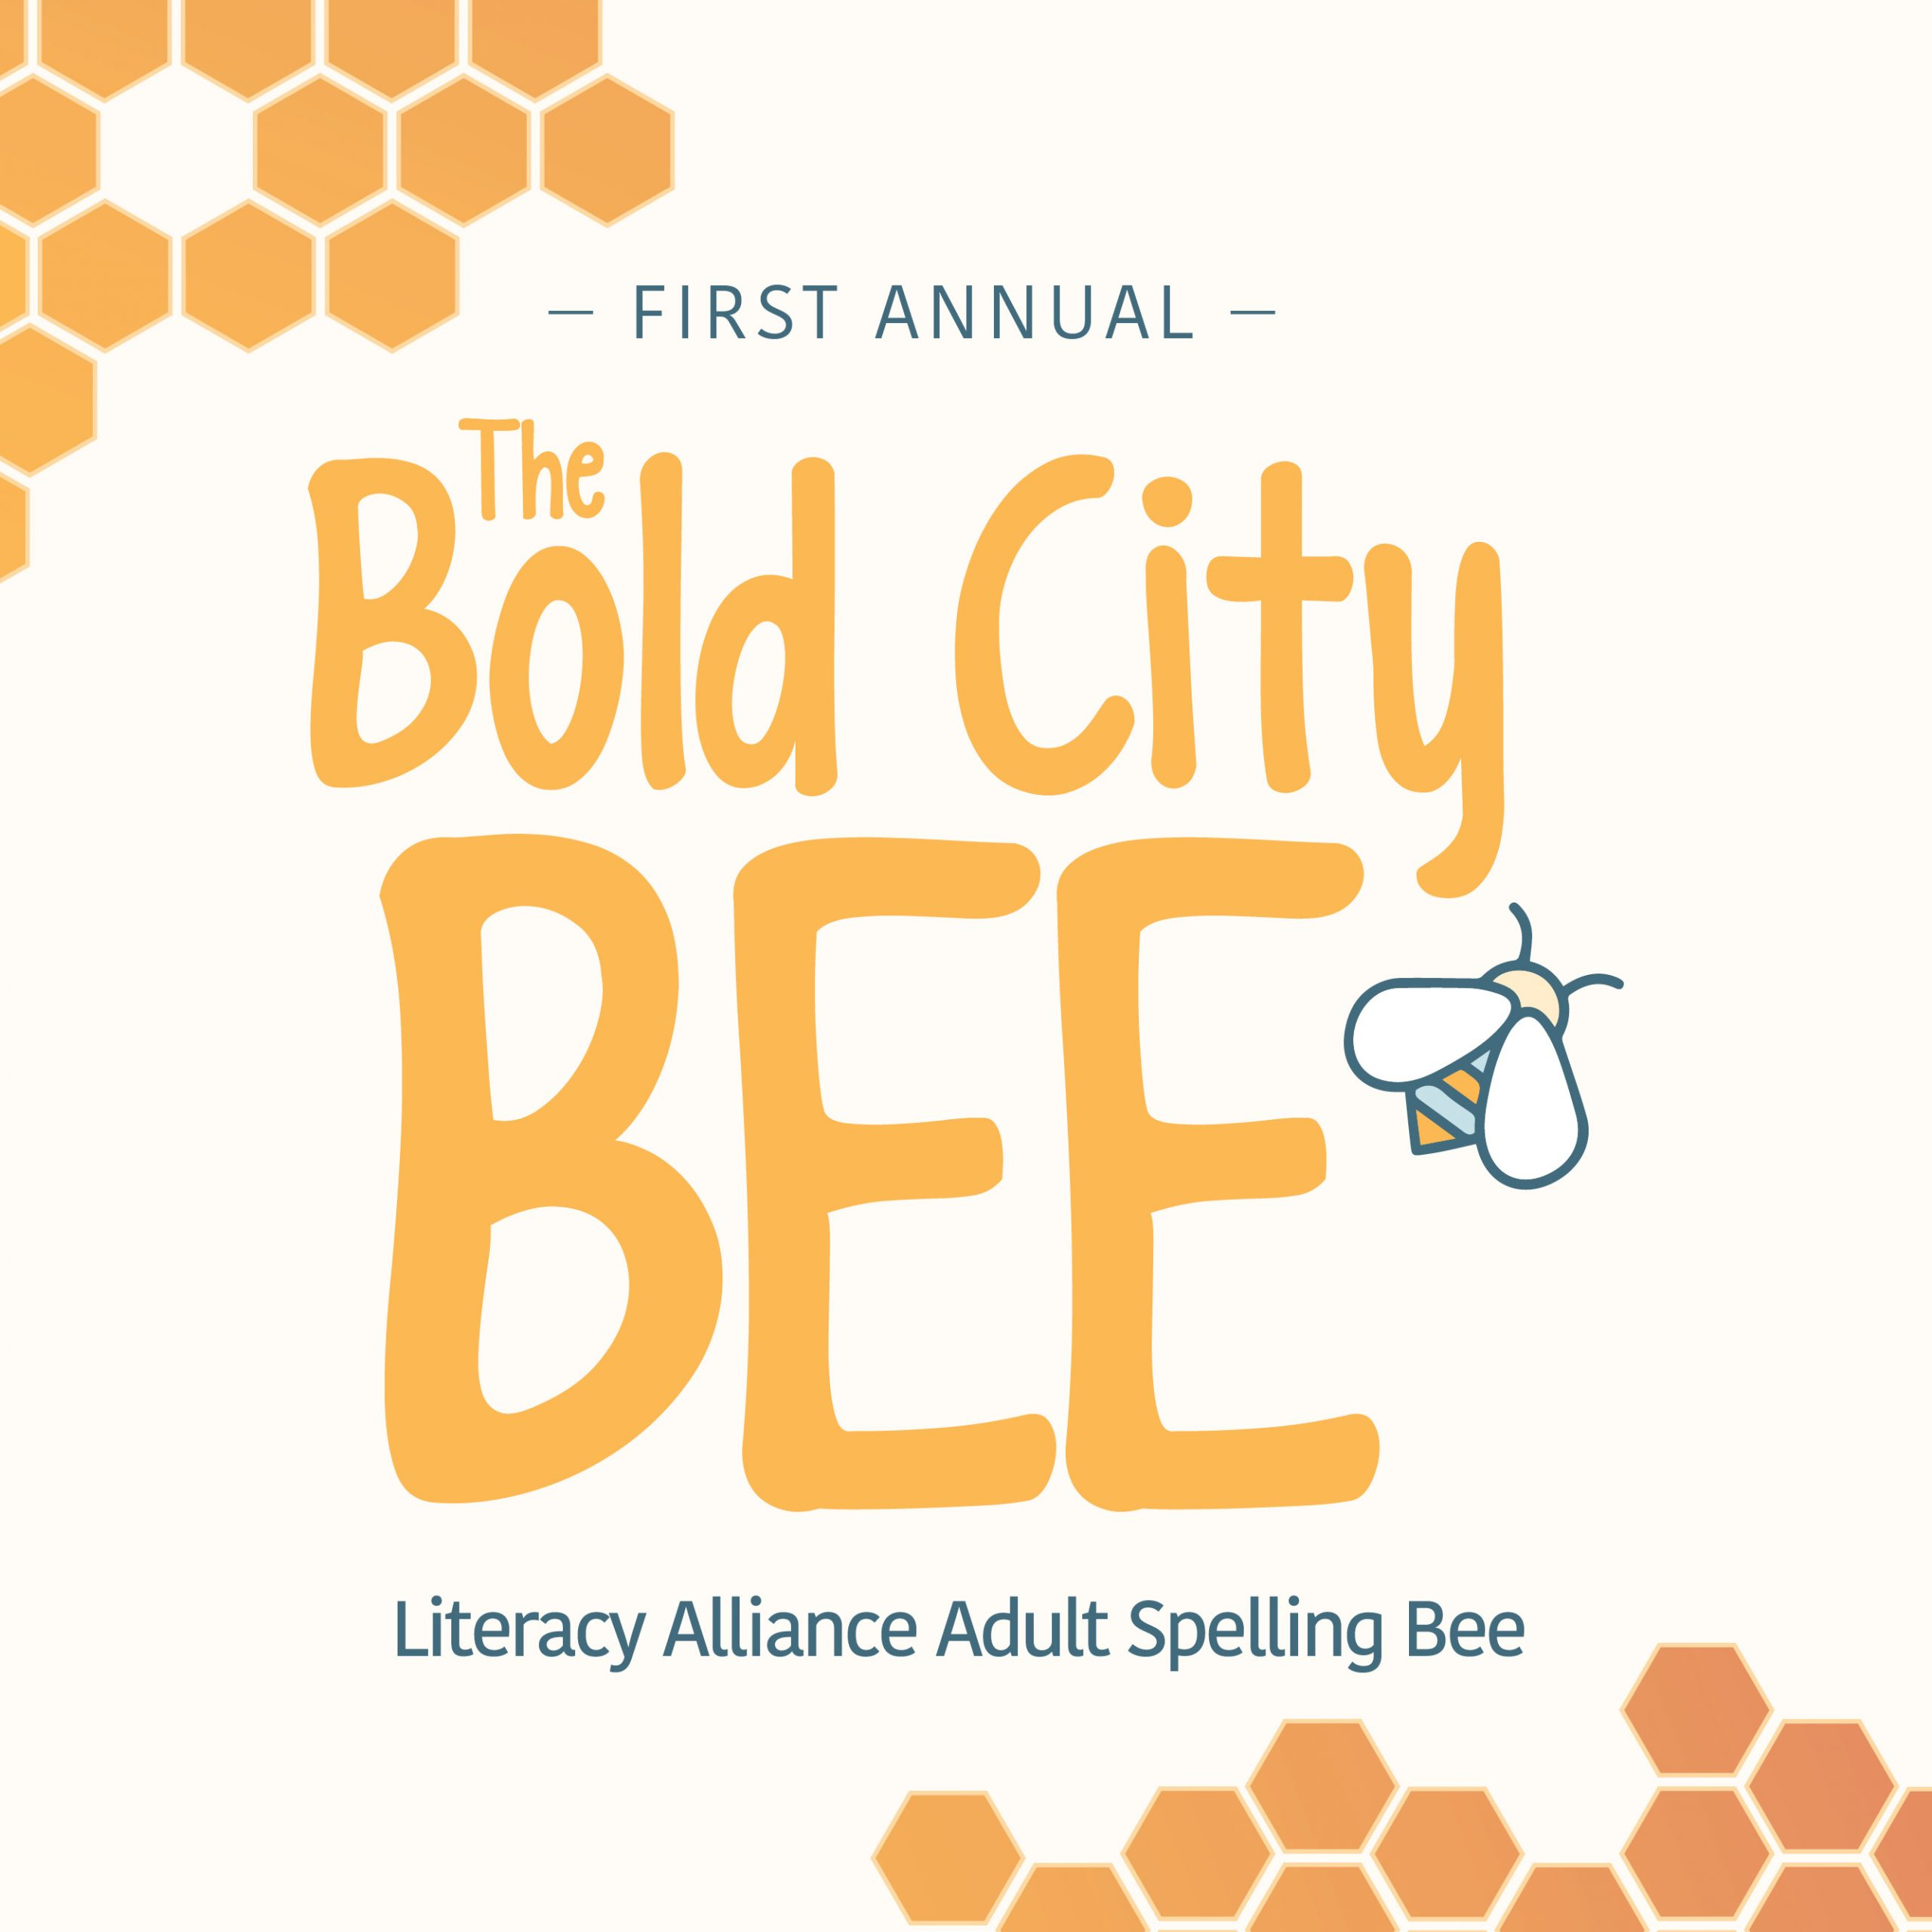 First Annual: The Bold City Bee – A Literacy Alliance Adult Spelling Bee